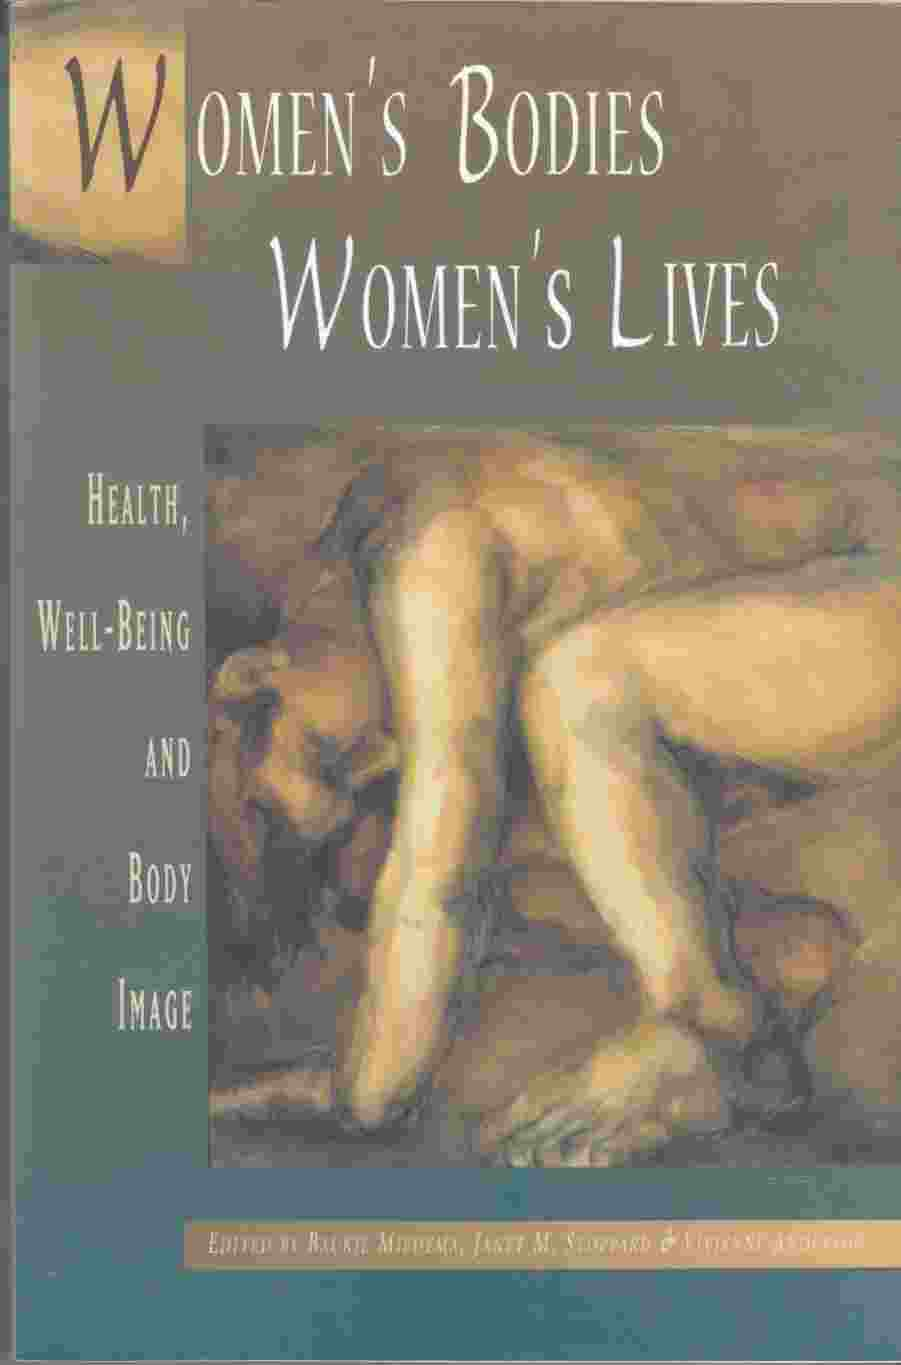 Image for Women's Bodies Women's Lives Health, Well-Being and Body Image